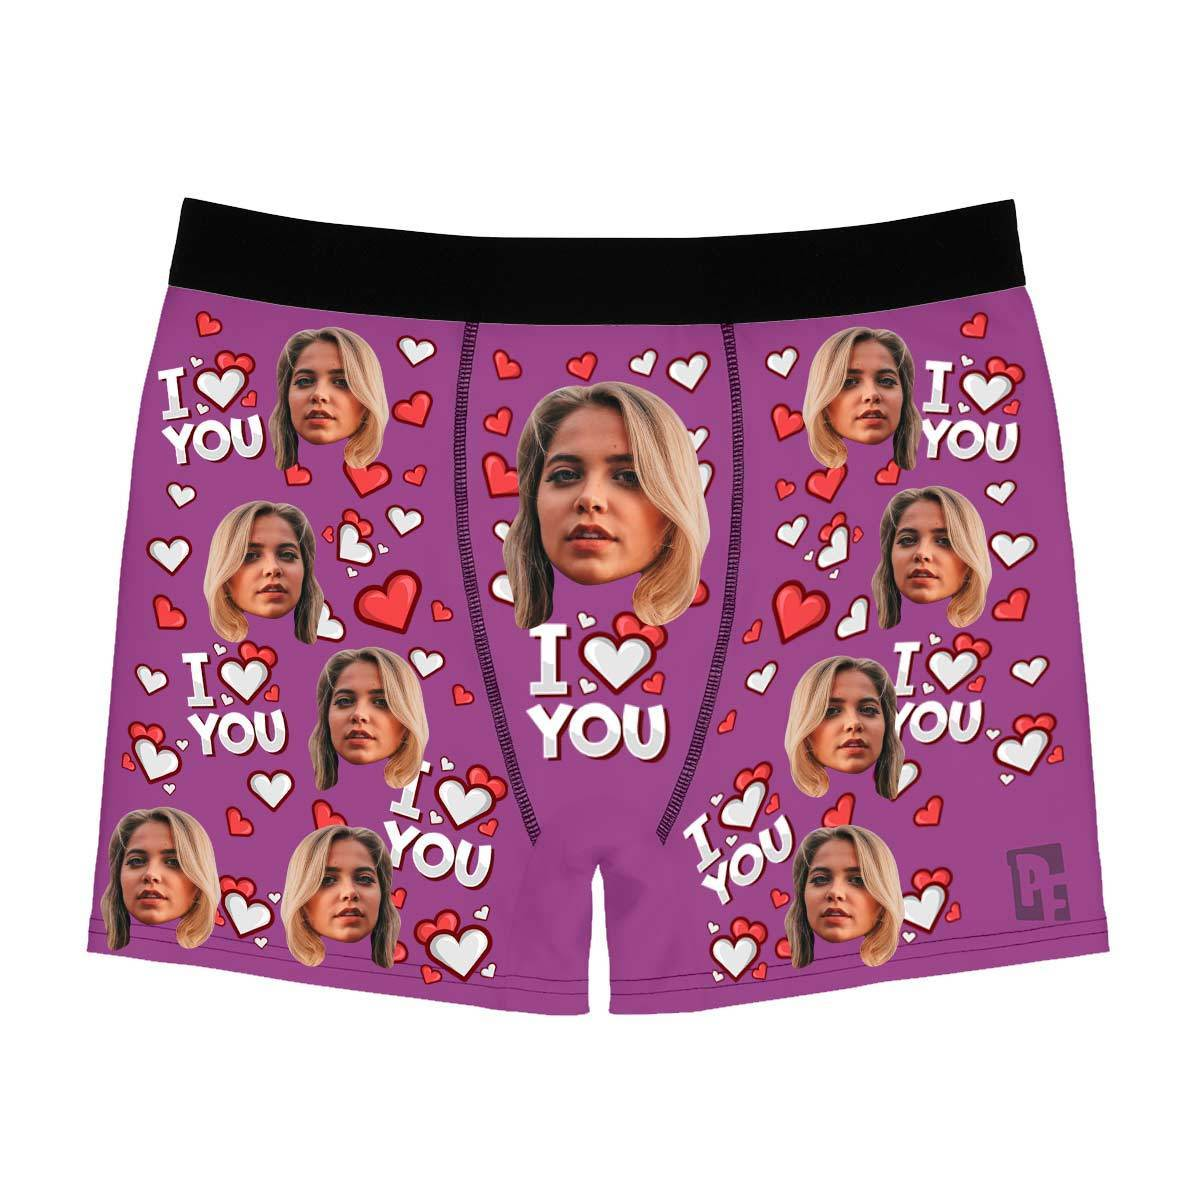 Purple I love you men's boxer briefs personalized with photo printed on them